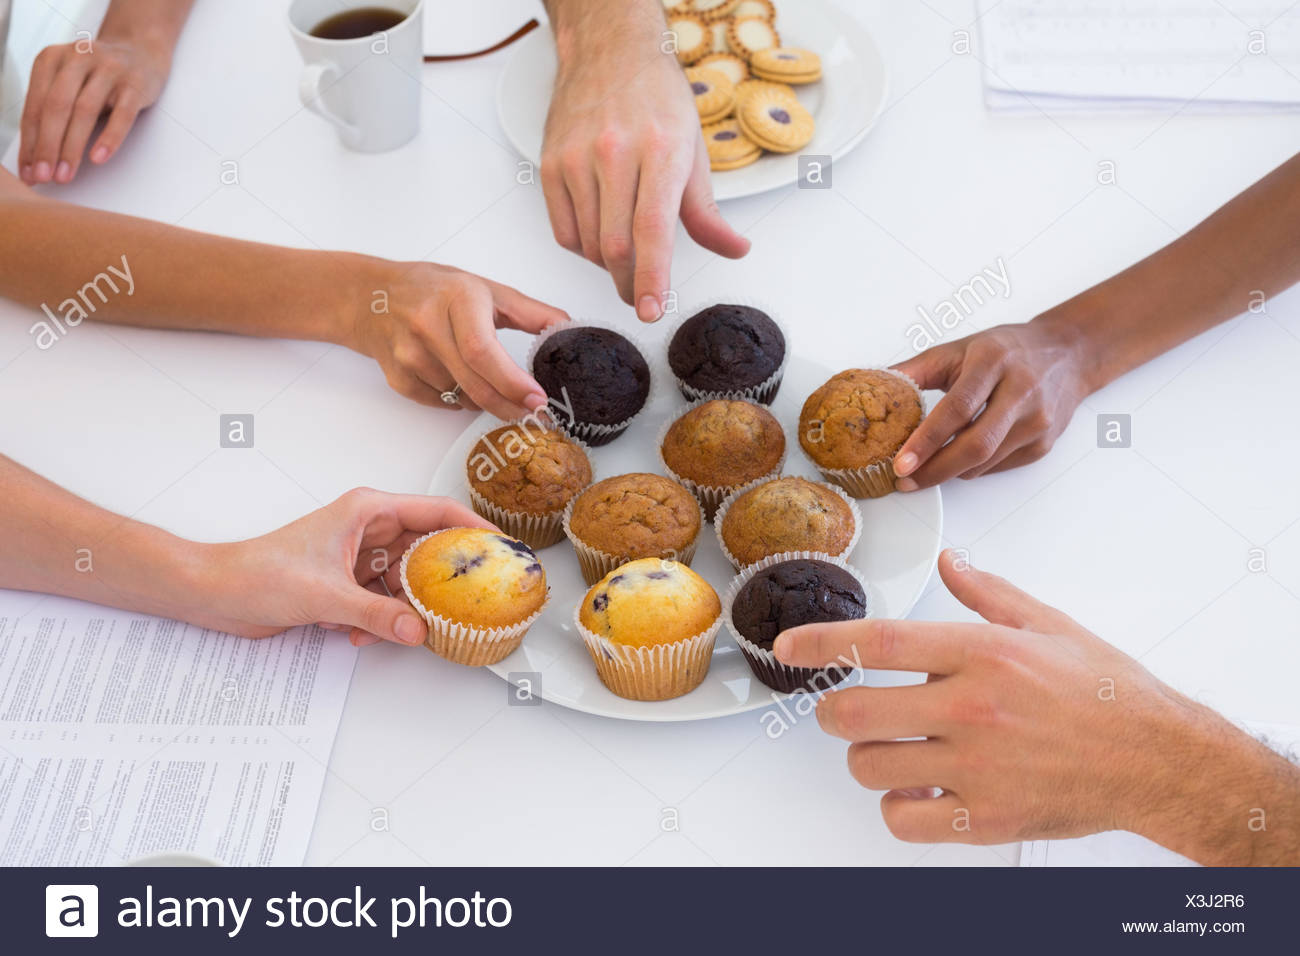 Hungry workers grabbing muffins - Stock Image